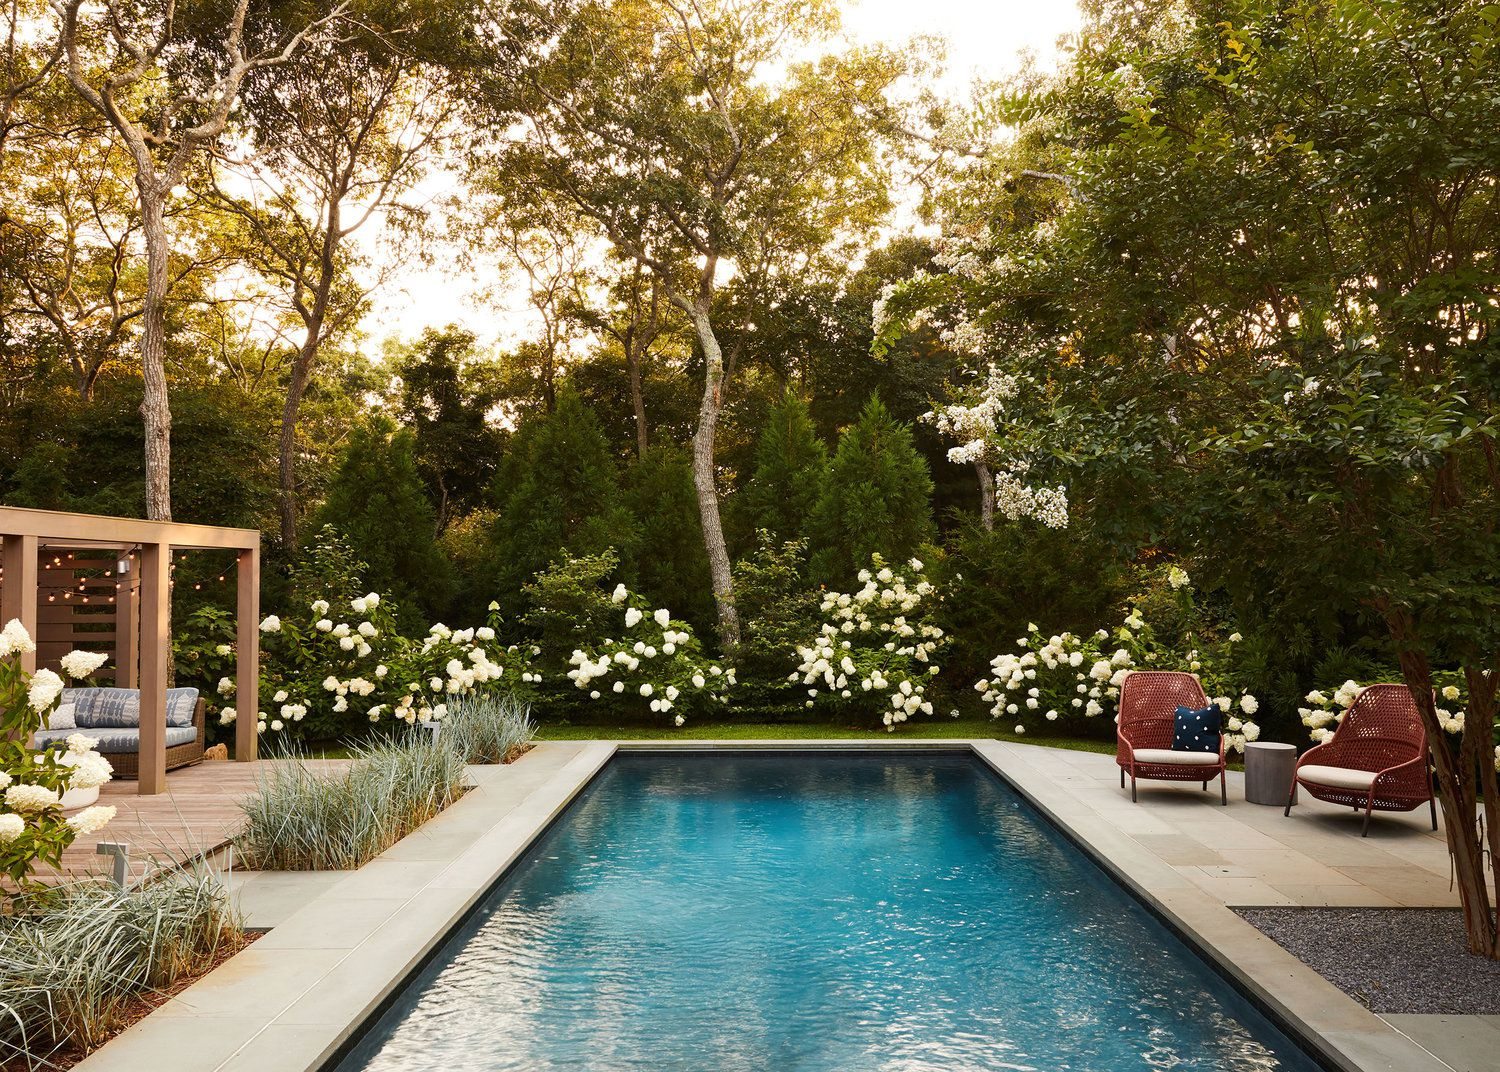 37 Breathtaking Backyard Ideas Outdoor Space Design Inspiration with Best Backyard Ideas